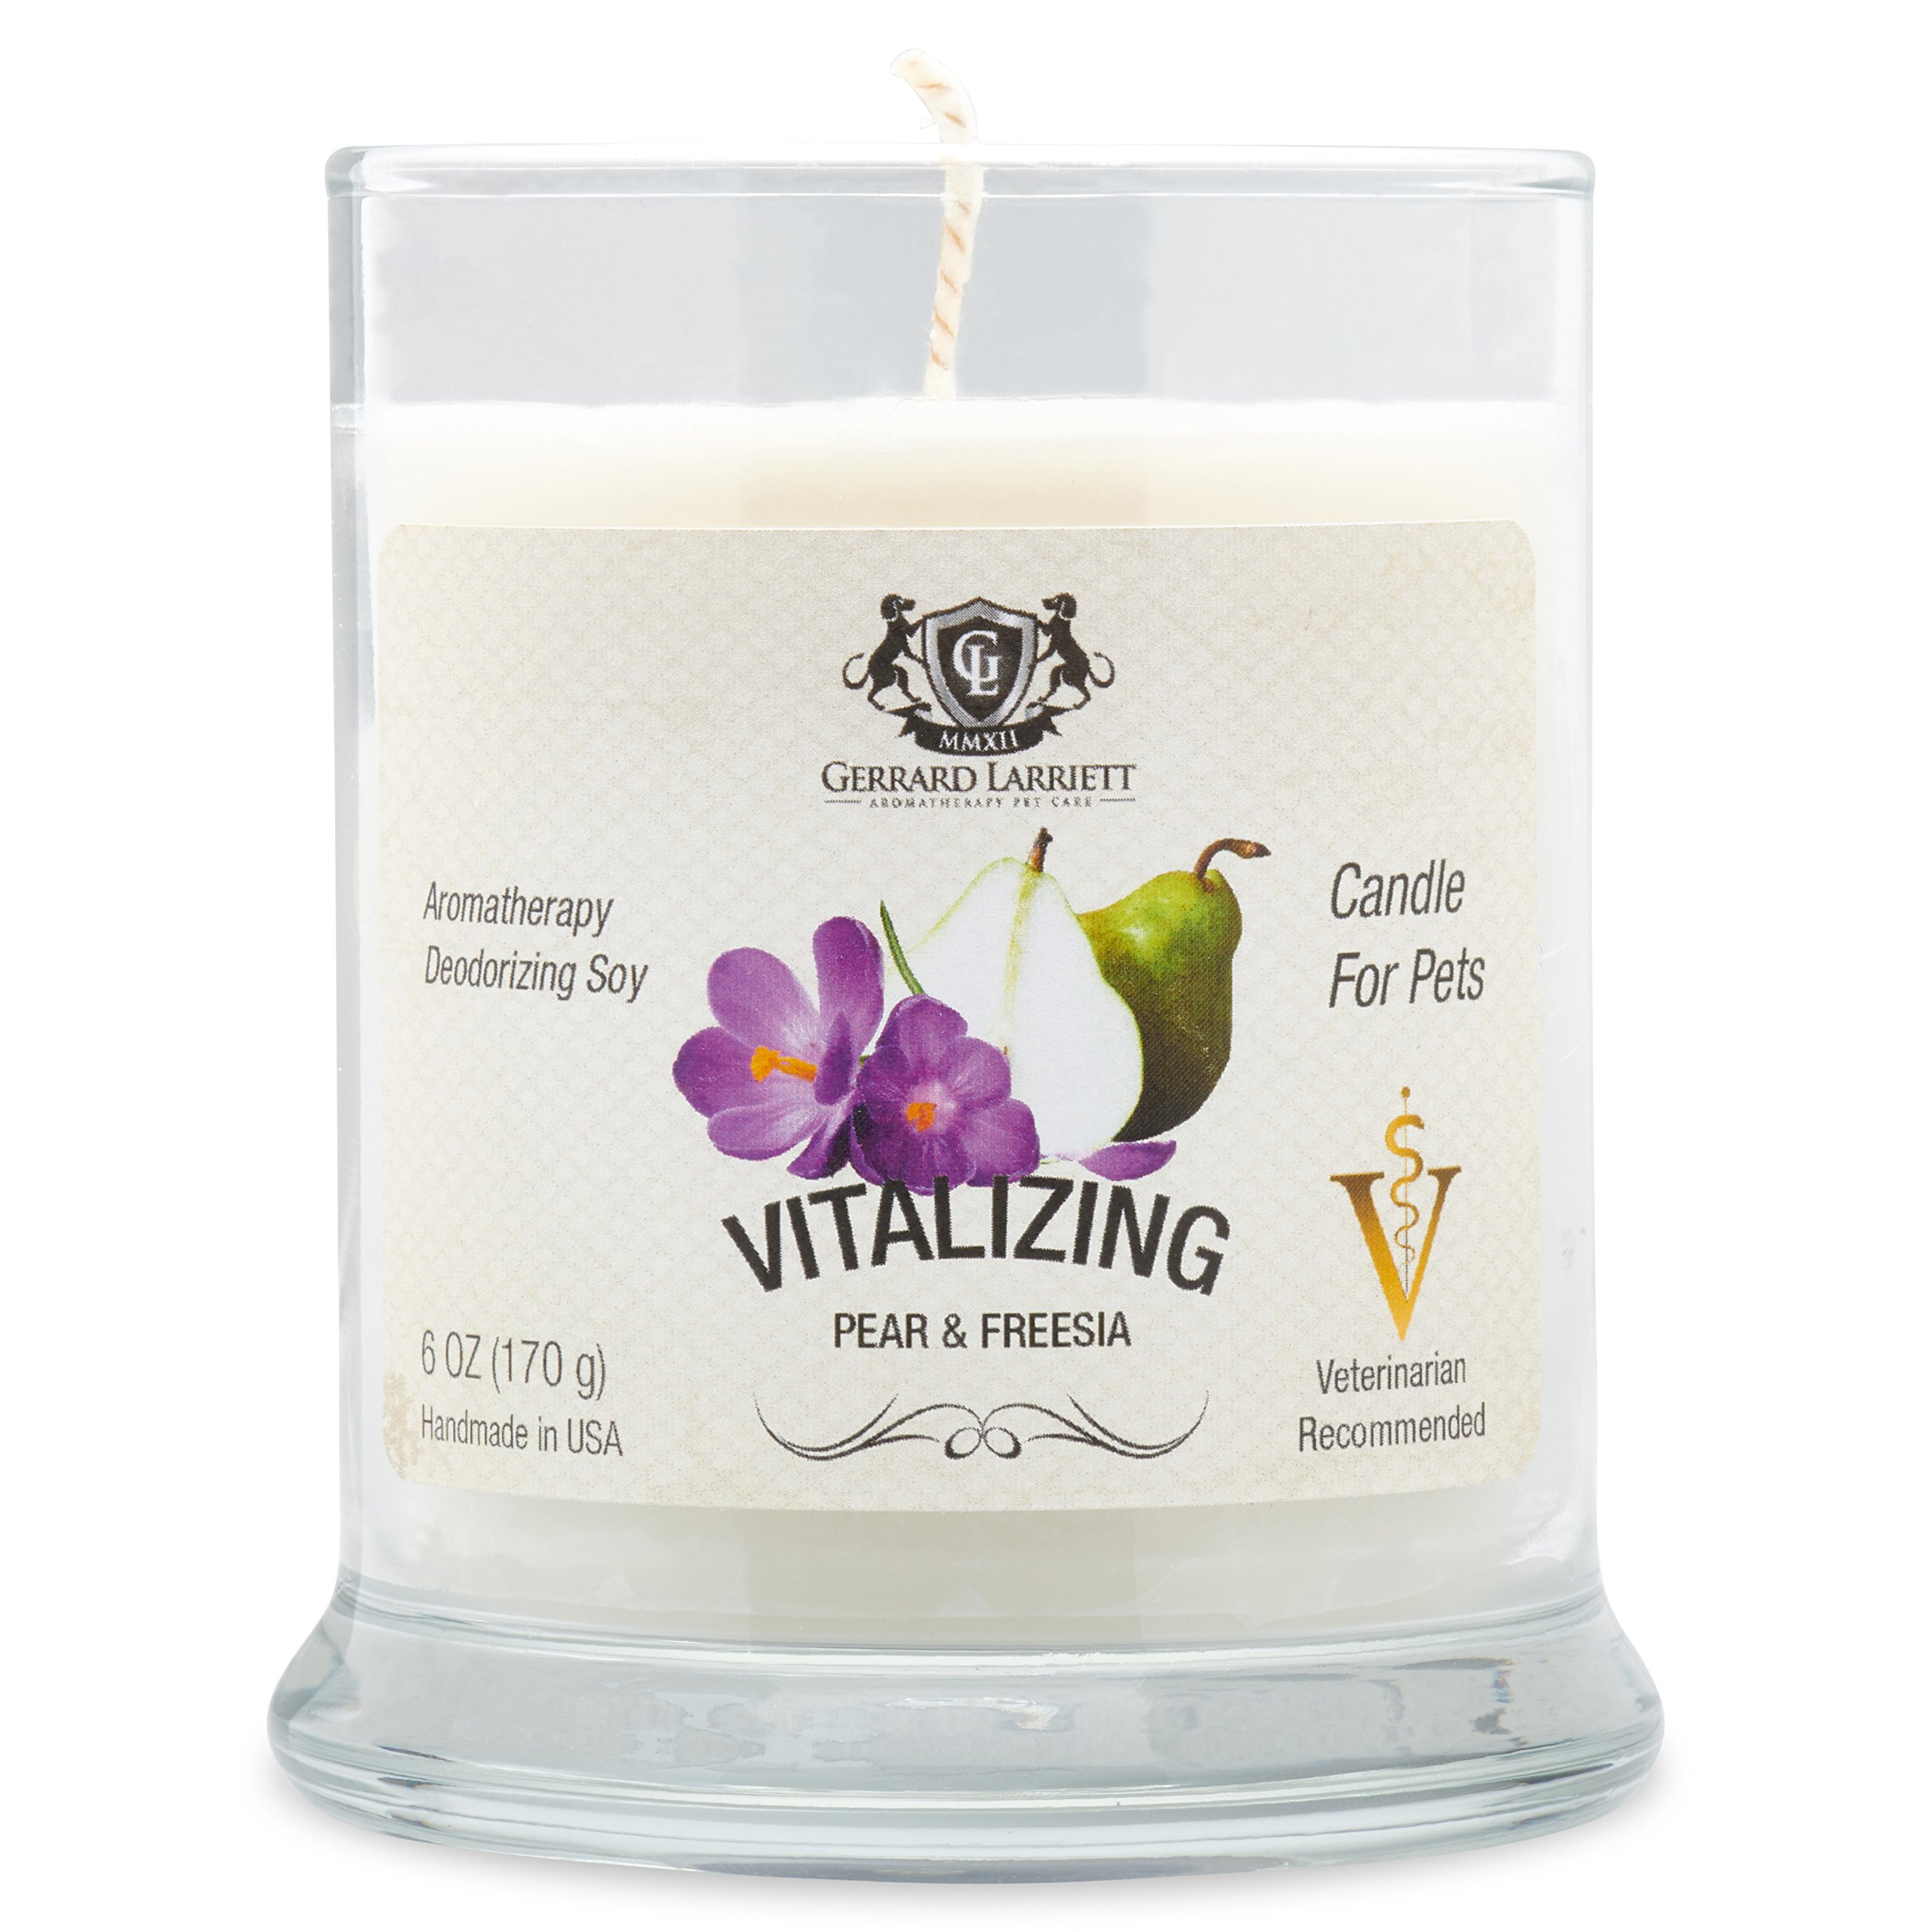 Aromatherapy Deodorizing Soy Candle for Pets, Candles Scented, Pet Odor Eliminator & Animal Lover Gift (Vitalizing Pear & Freesia)